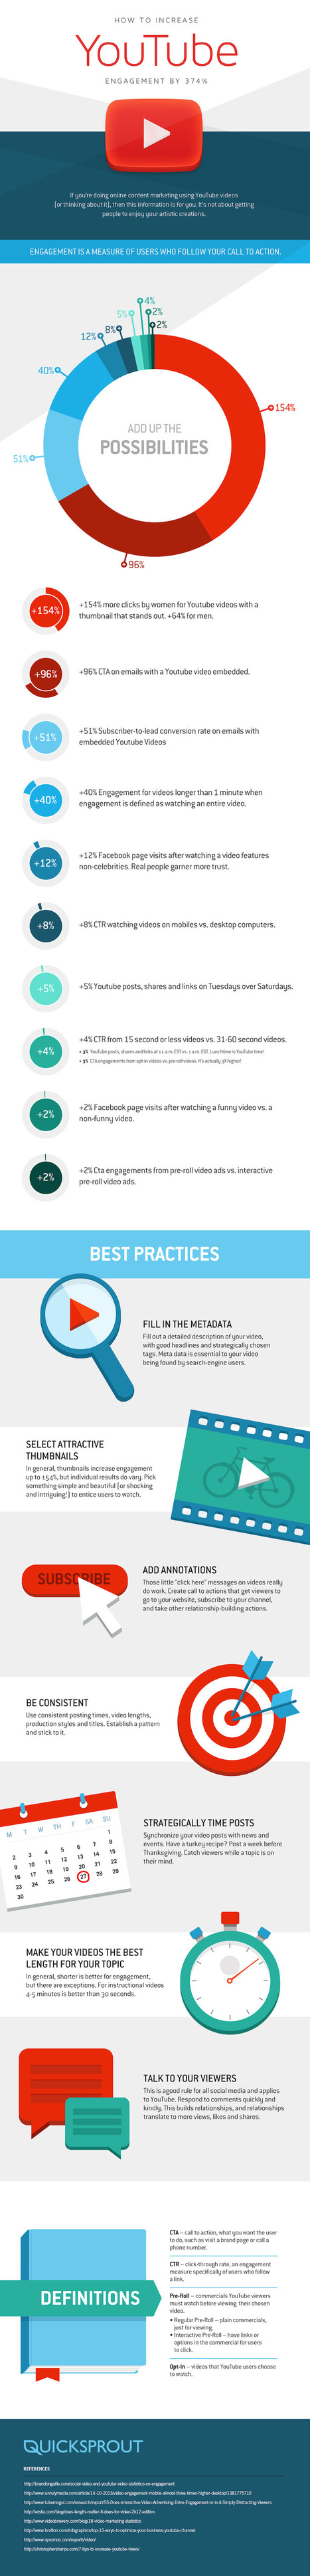 How to Increase Your YouTube Engagement by 374% [Infographic ] | SocialMedia | Scoop.it